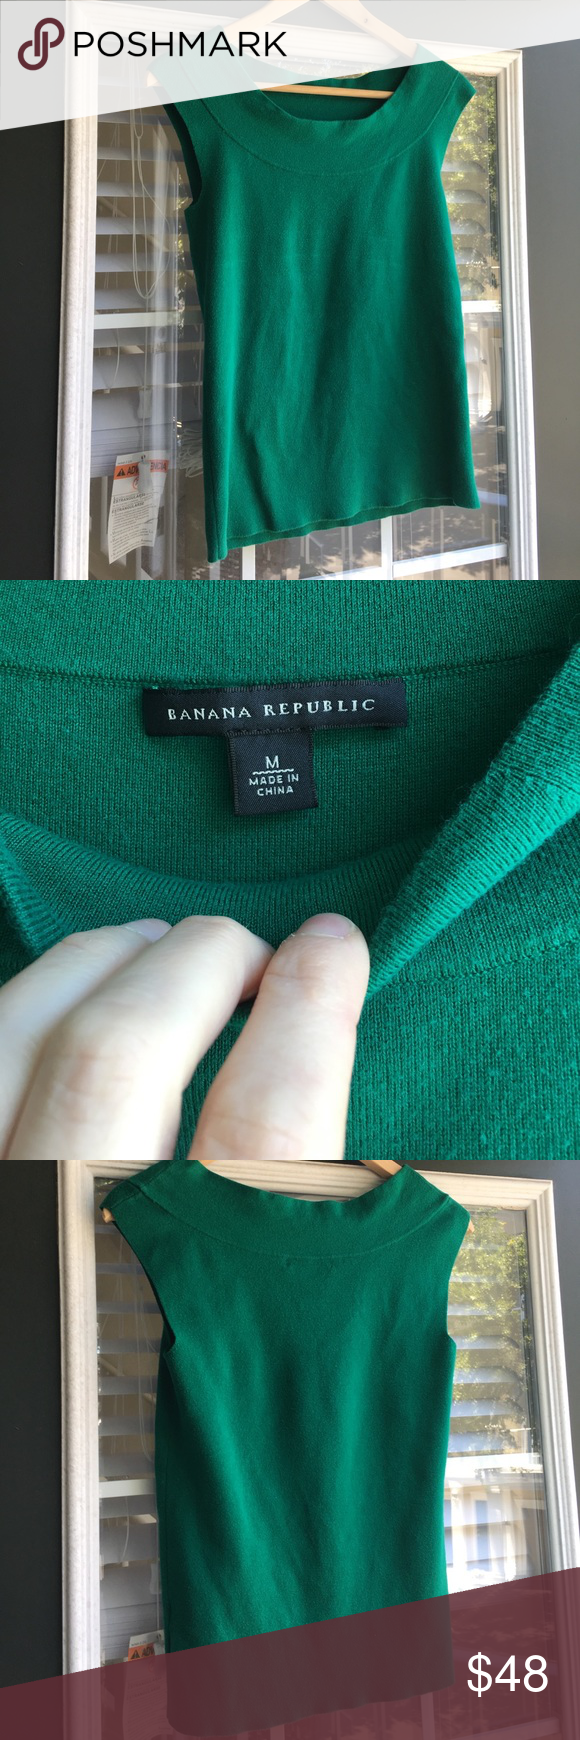 🐲🎋Emerald Green Sleeveless Banana Republic Top Gorgeous Emerald Green Sleeveless Top . Gently used, and cared for! Made by Banana Republic. It is a thicker material, soft to the touch. No stains or odors. I wore it with jeans and with work pants, and suits. Very versatile. Banana Republic Tops